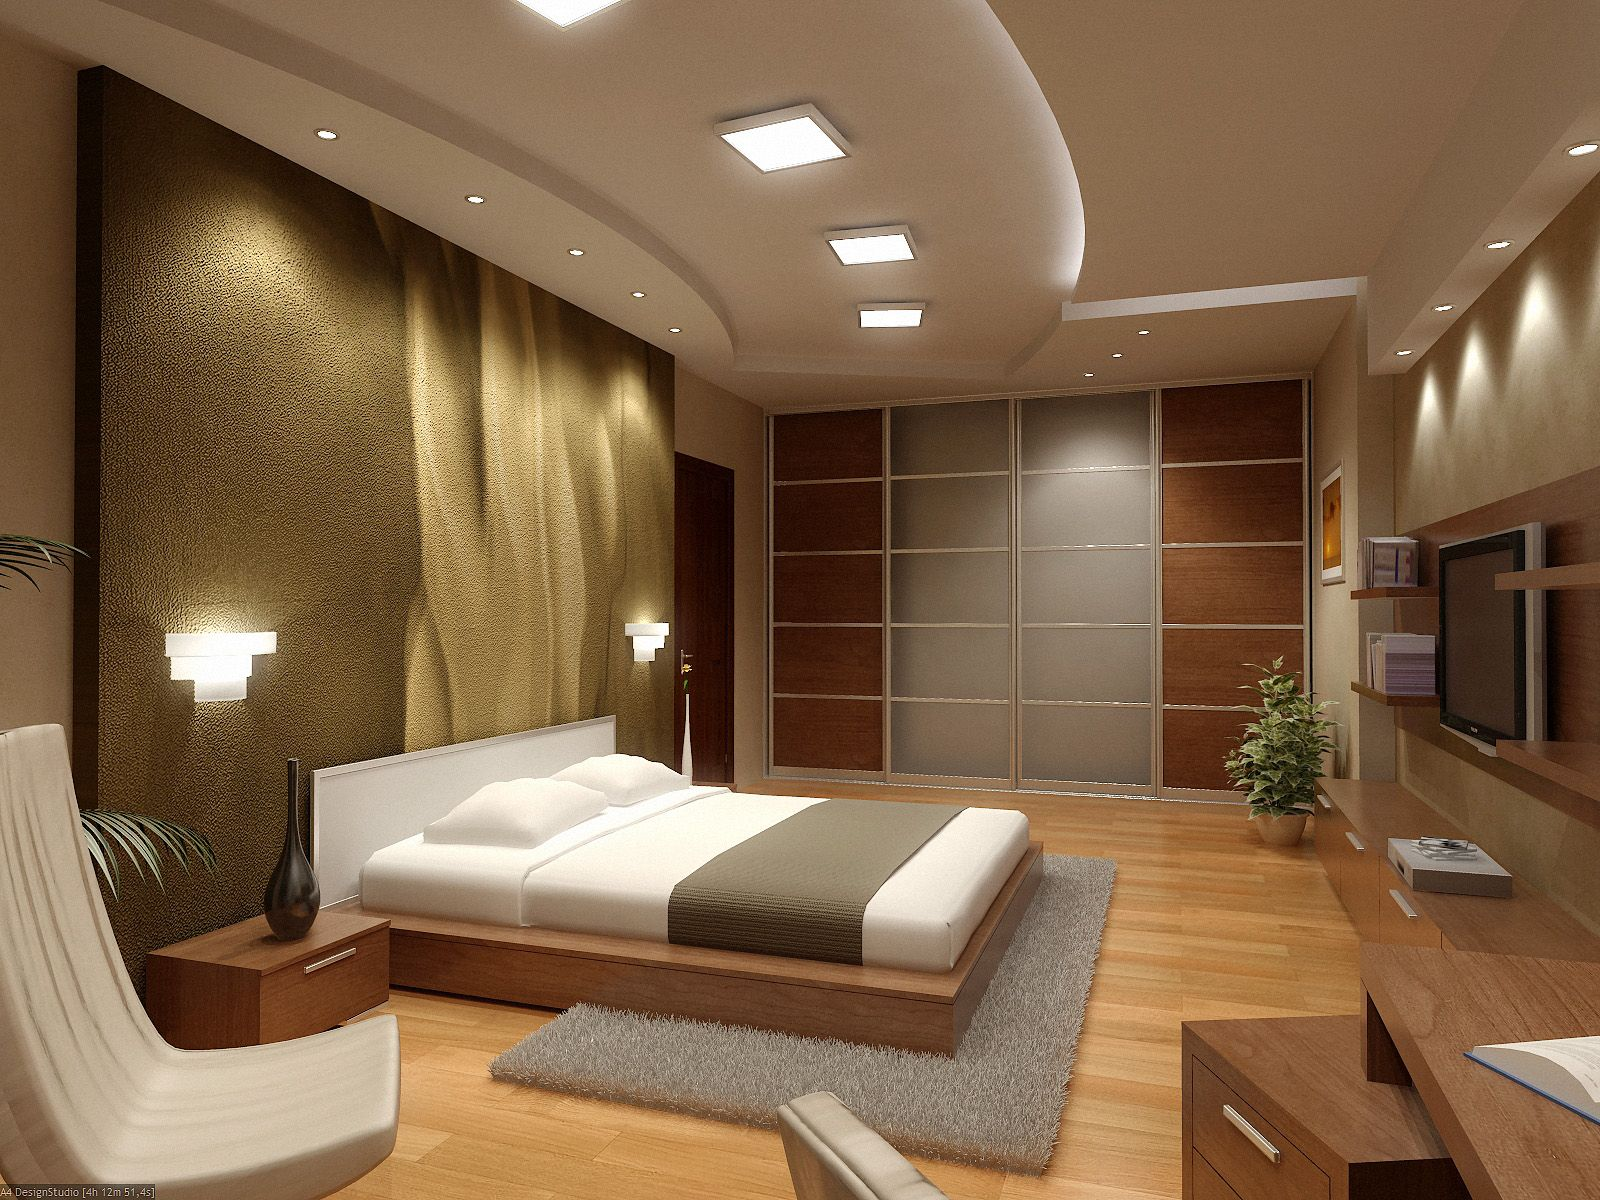 new home designs latest. modern homes luxury interior